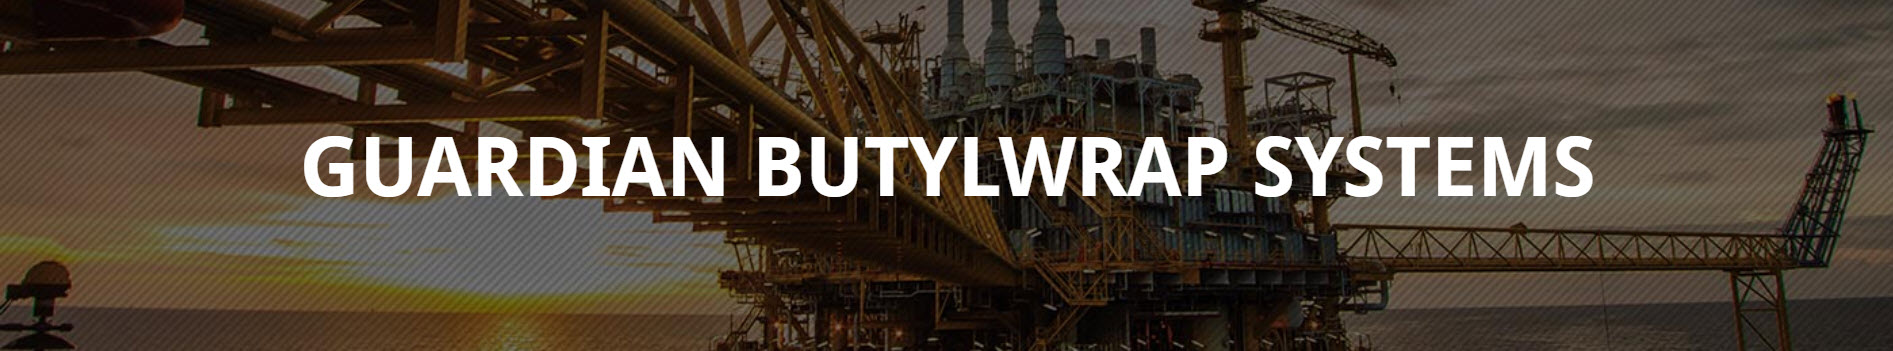 Butylwrap Systems